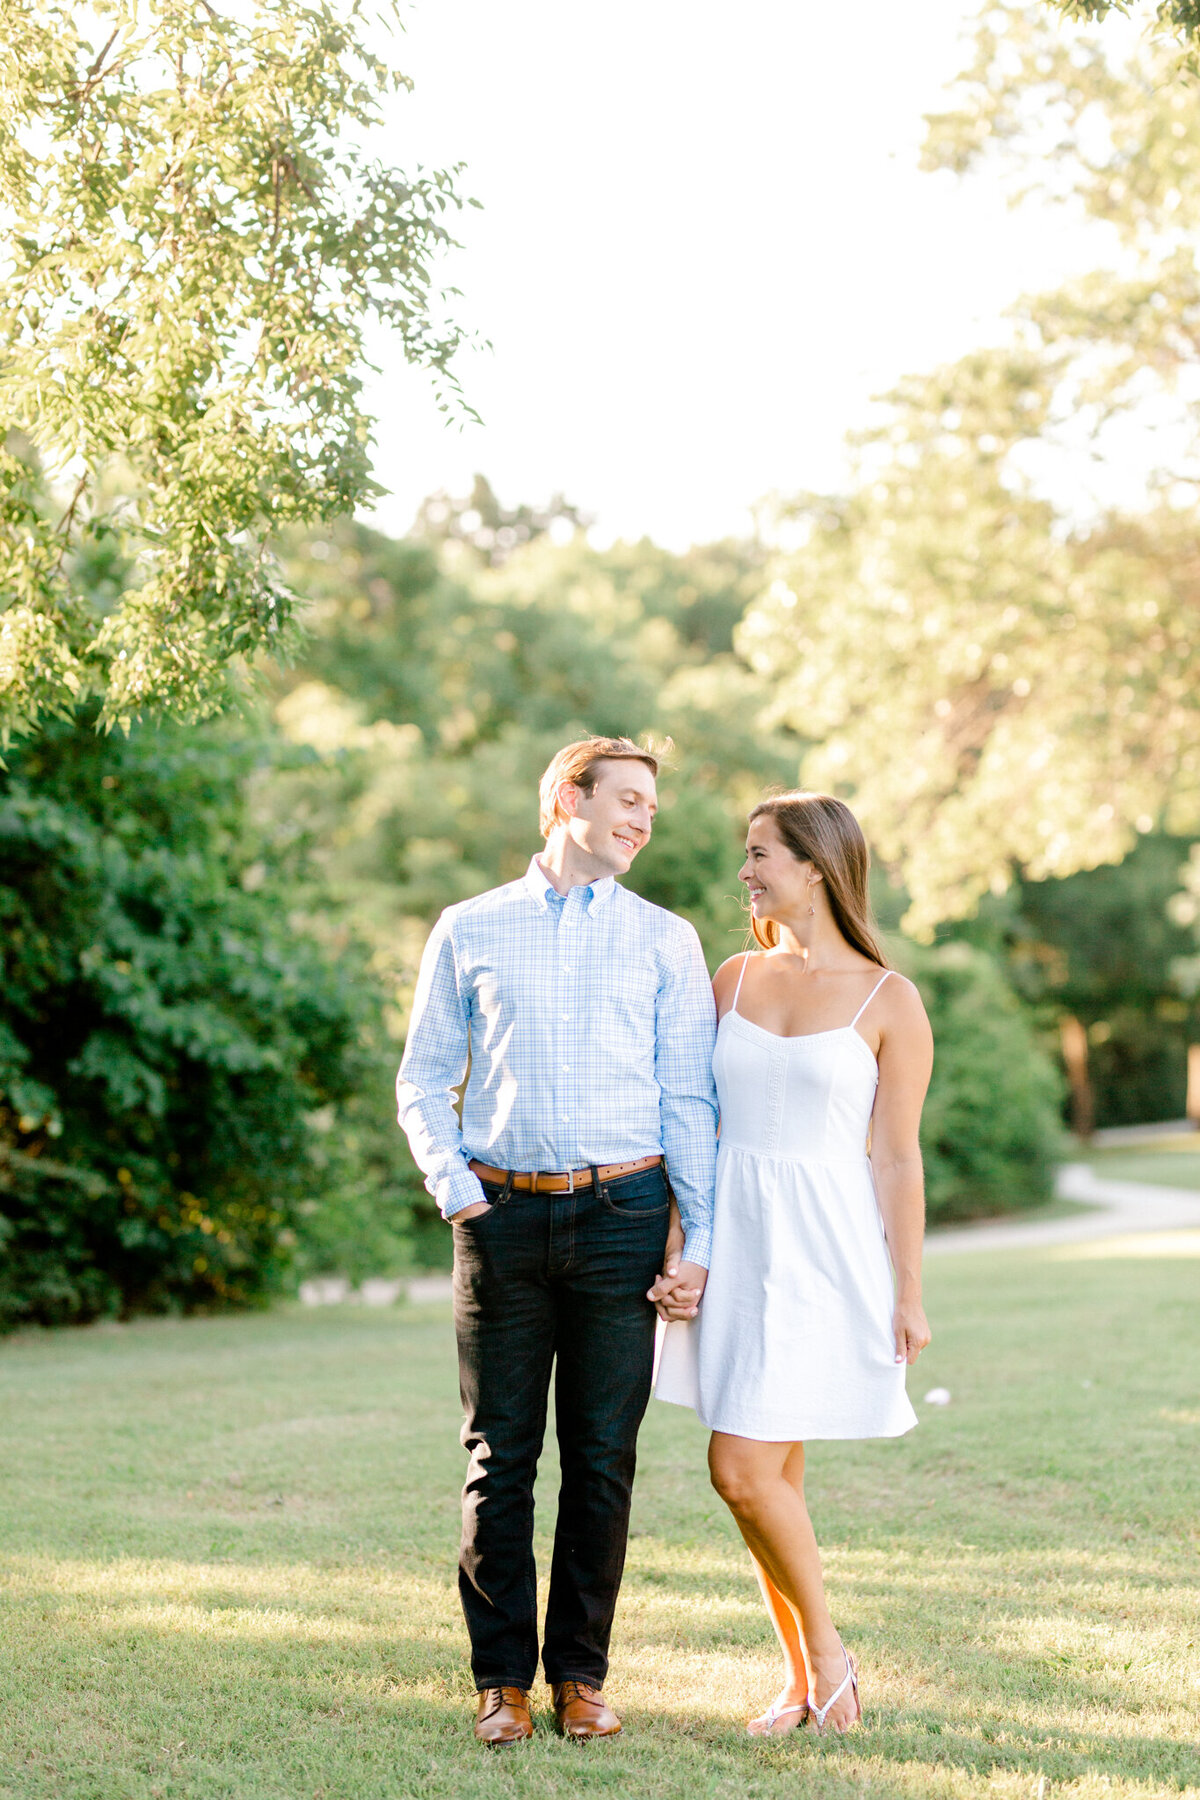 Christina & Steven Engagement Session at Prairie Creek Park in Richardson, Texas | DFW Wedding Photographer | Sami Kathryn Photography-4